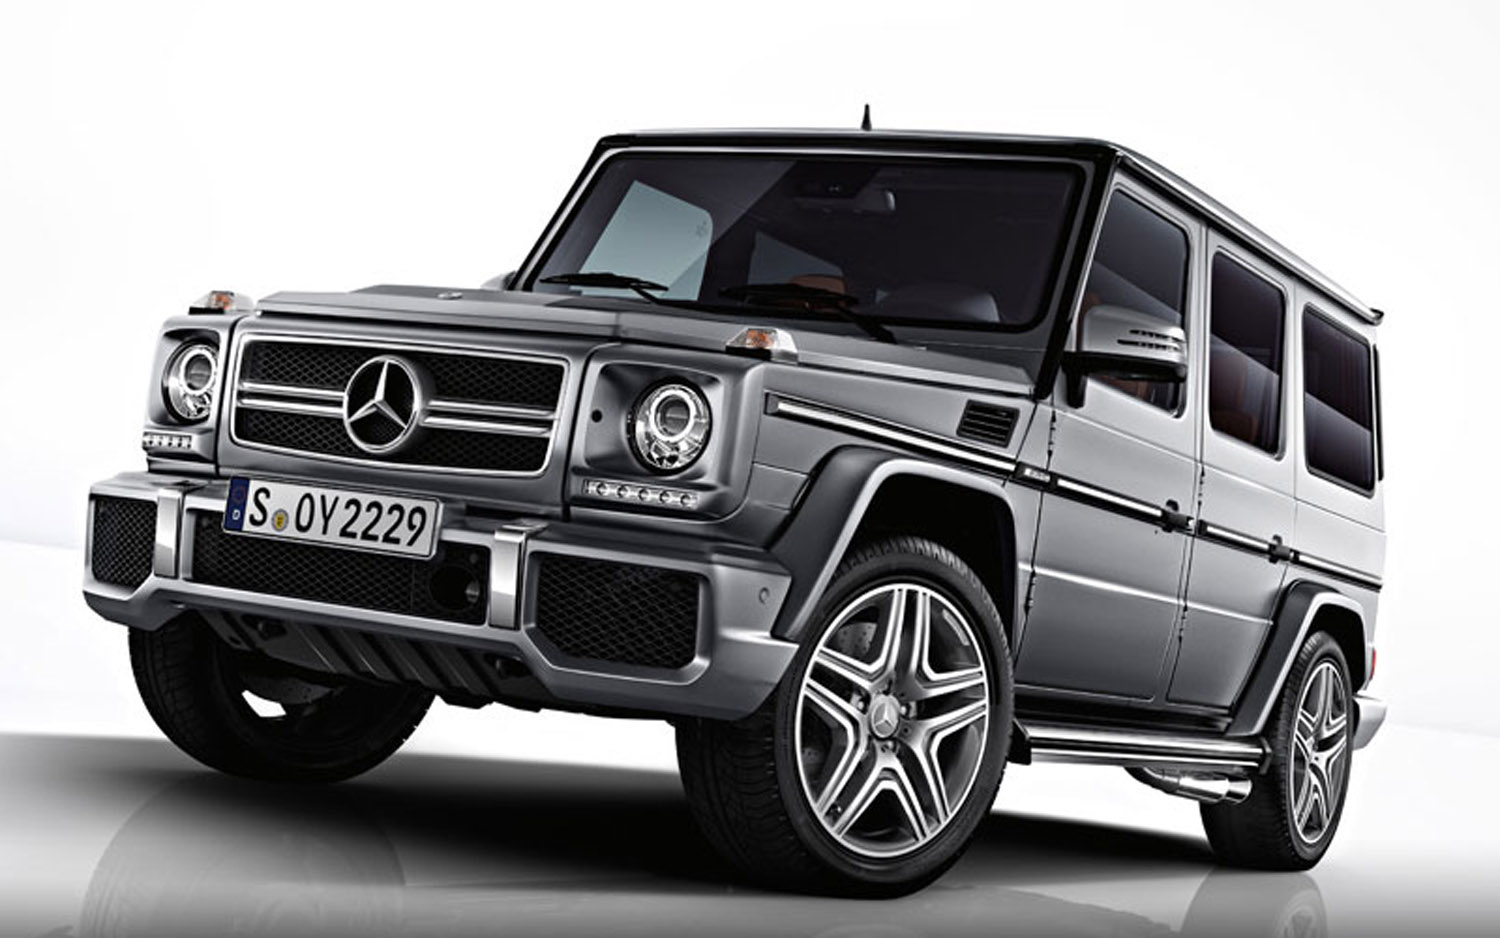 Mercedes benz g class 4x4 and 6x6 les bons viveurs l b v for Mercedes benz g class pictures